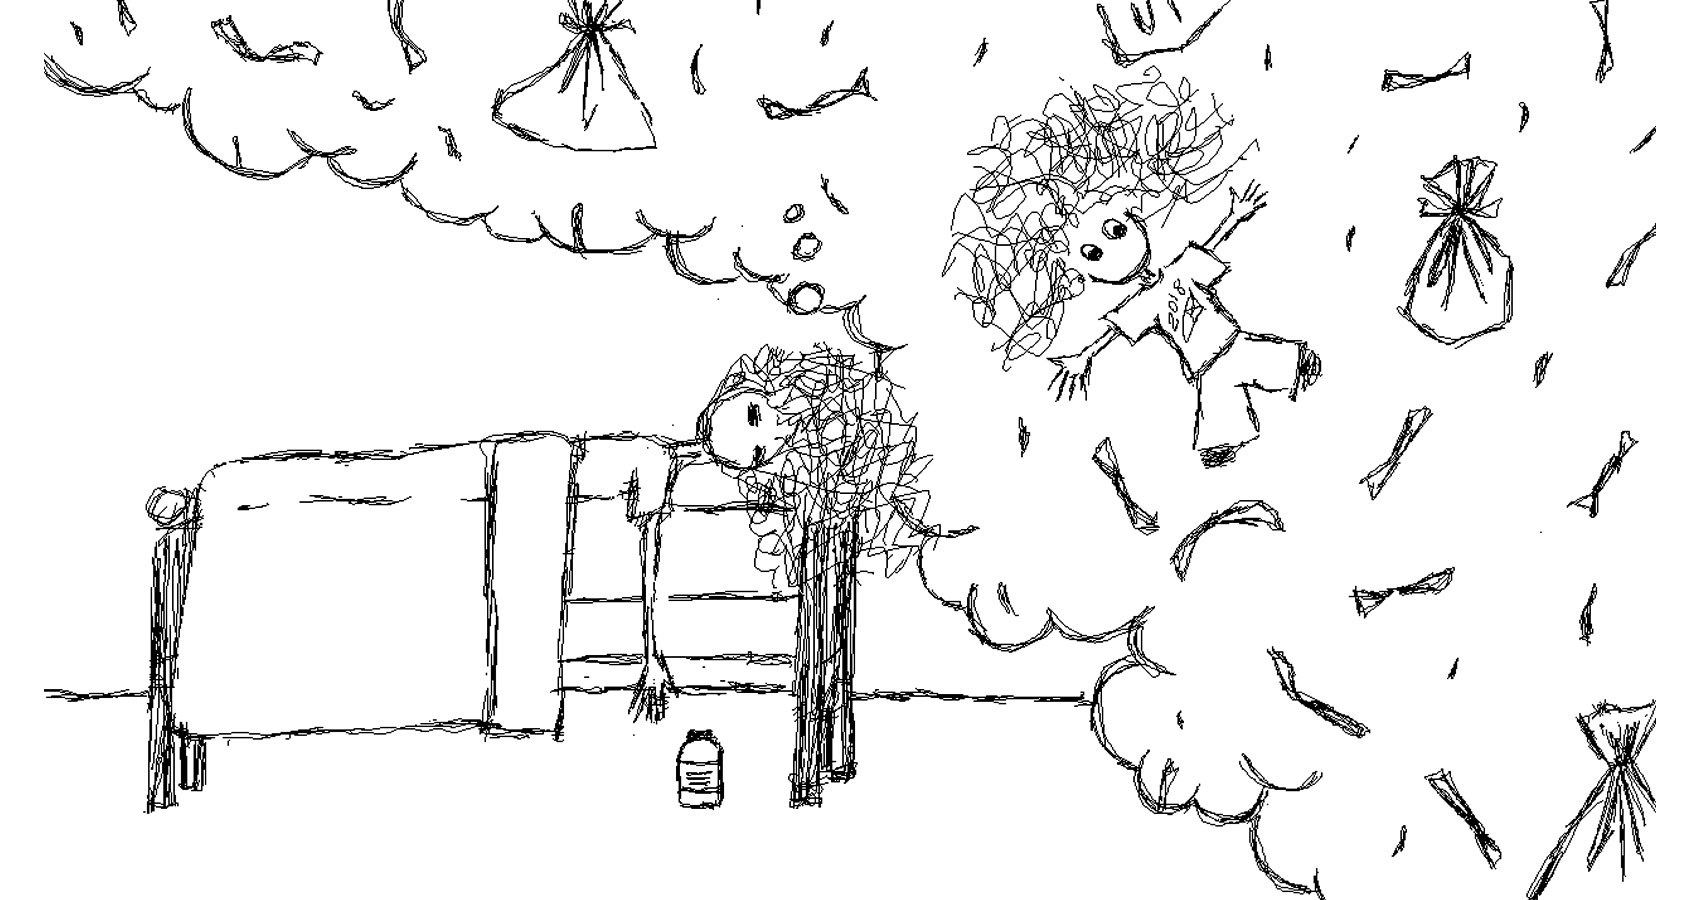 Cold Medicine Induced Dreams by Robyn MacKinnon at Spillwords.com